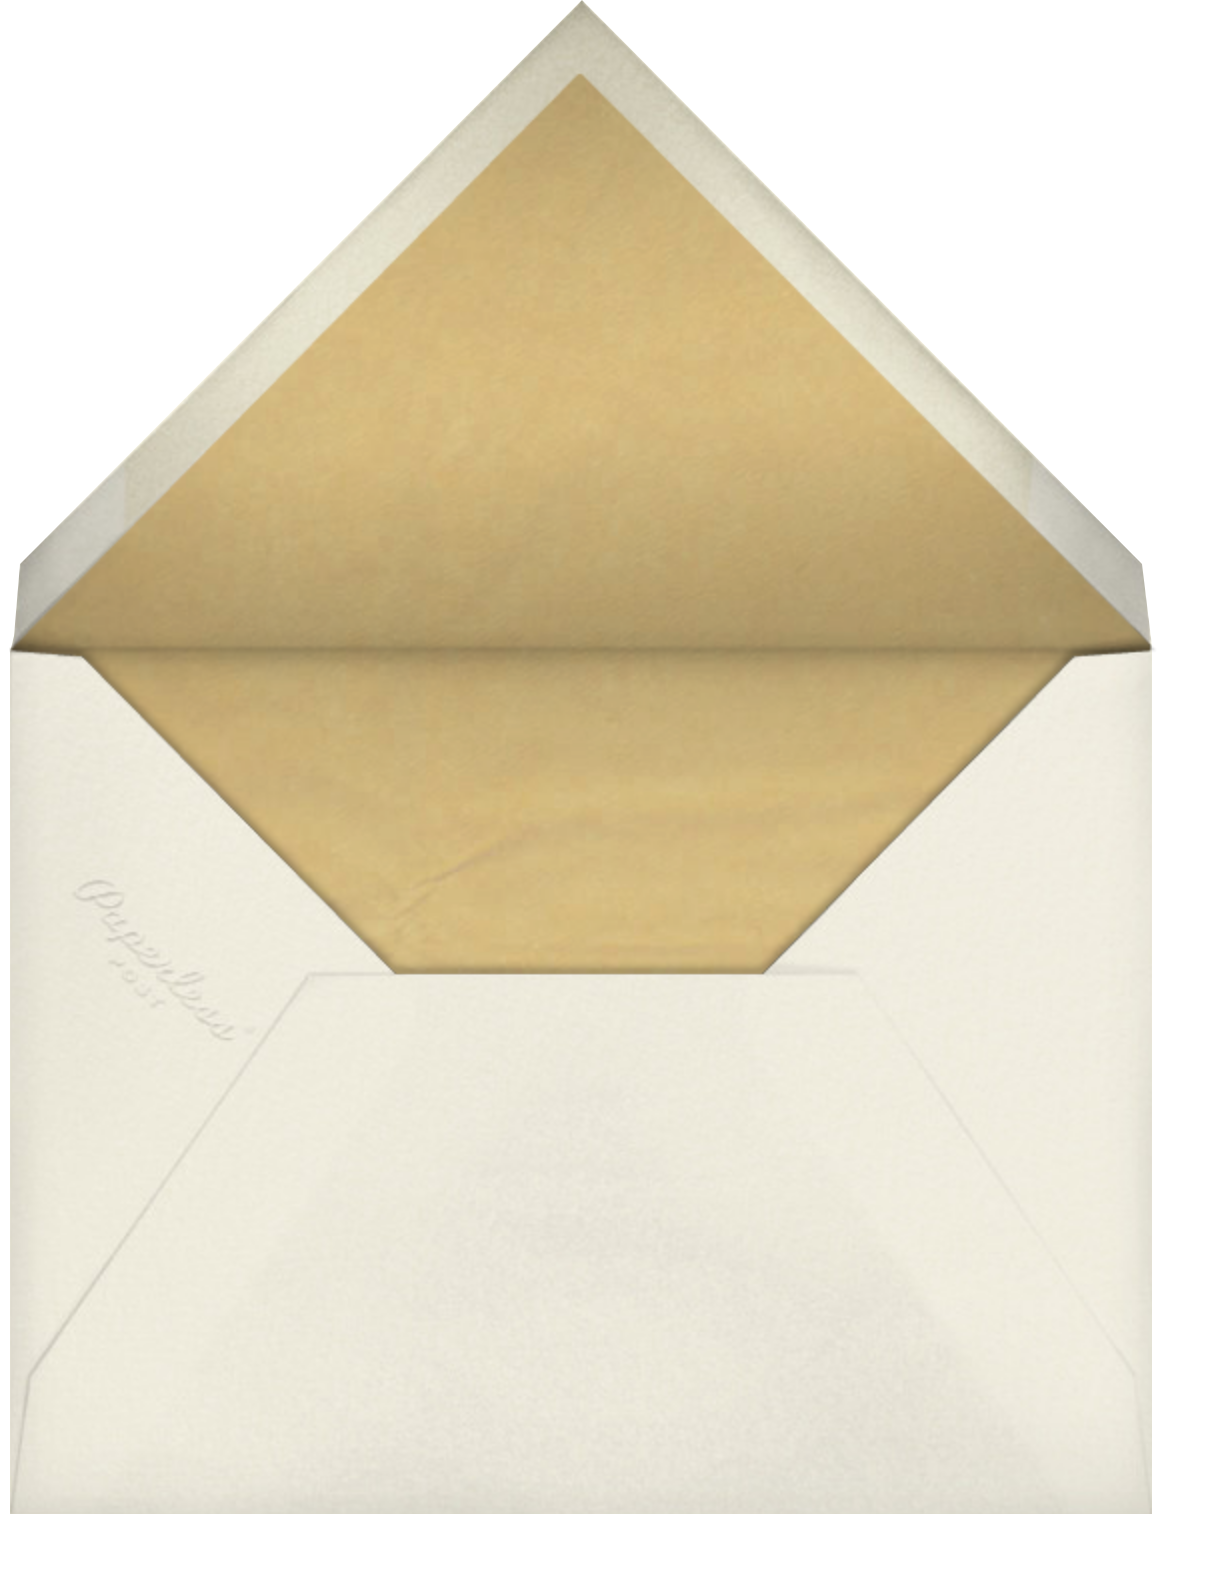 There and Then - Paperless Post - Save the date - envelope back